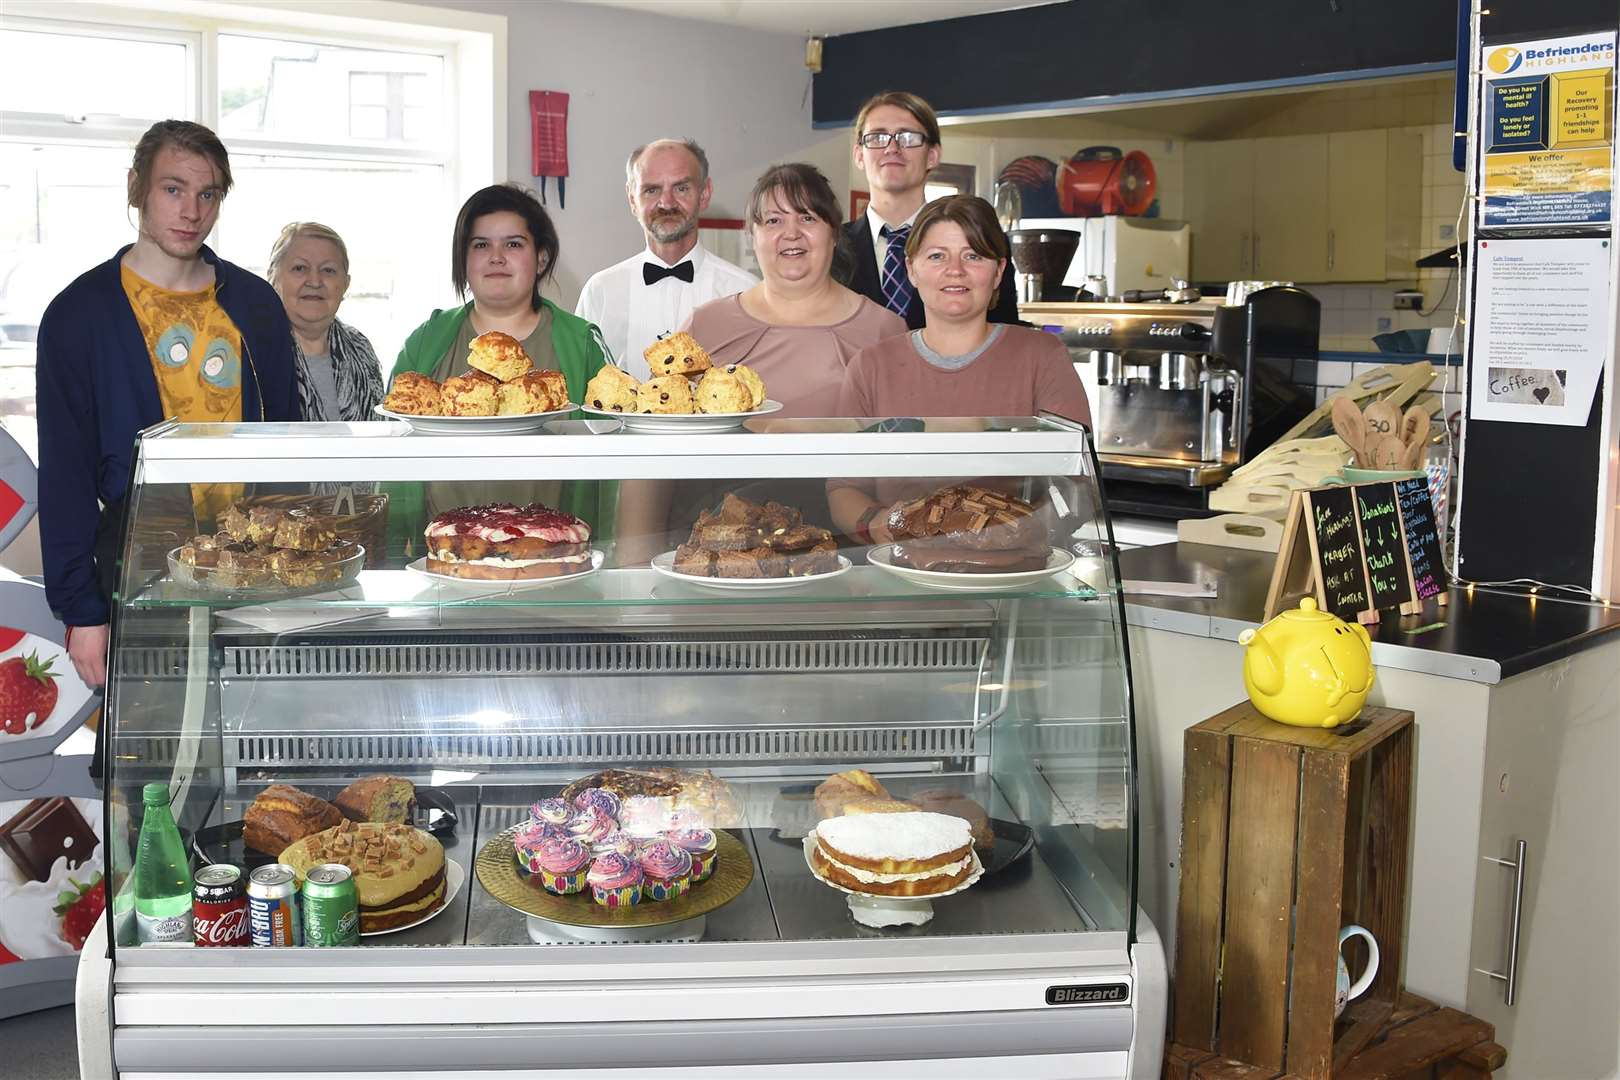 Thurso Community Café owners and some of the volunteers: Callum Watson, Christine MacInnes, Shannon MacPhee, Andy Gearie, Louise MacInnes, Joe Ashley and Ann Brock. Pictures: Mel Roger